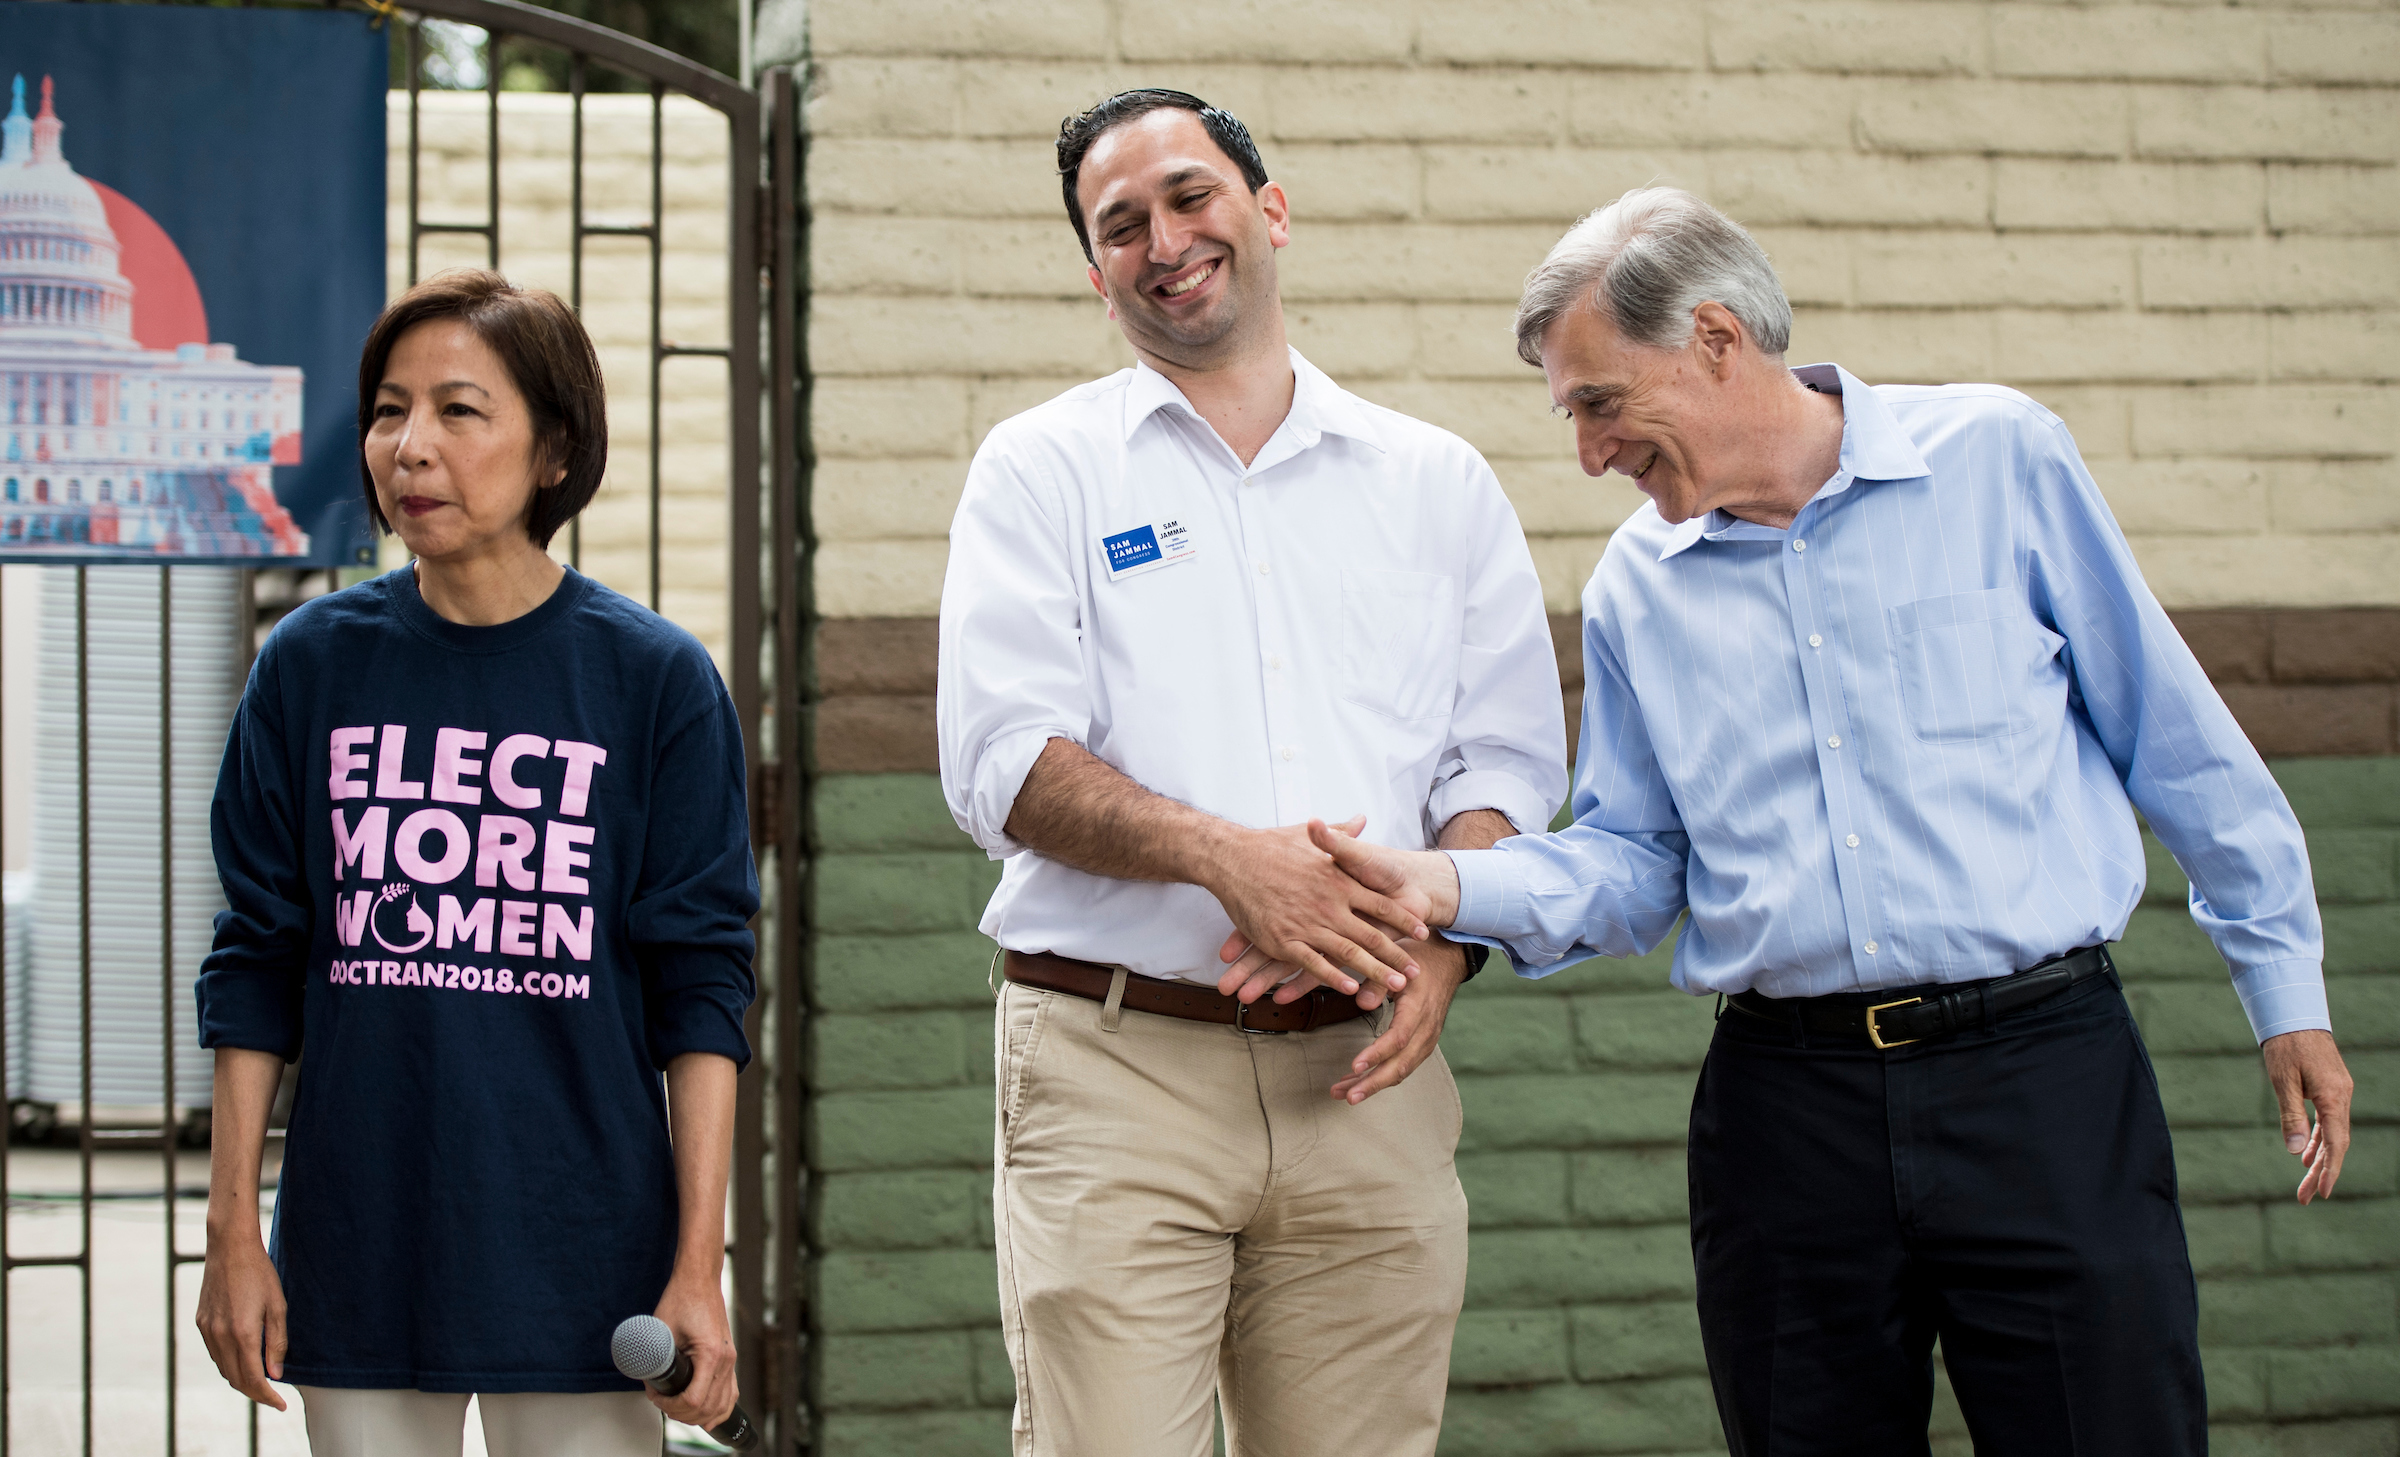 UNITED STATES - MAY 19: Democrats running for the California 39th Congressional district, from left, Mai-Khanh Tran, Sam Jammal and Andy Thorburn, speak to voters during a rally held by Swing Left at Carolyn Rosa Park in Rowland Heights, Calif., on Saturday, May 19, 2018. California is holding its primary election on June 5, 2018. (Photo By Bill Clark/CQ Roll Call)